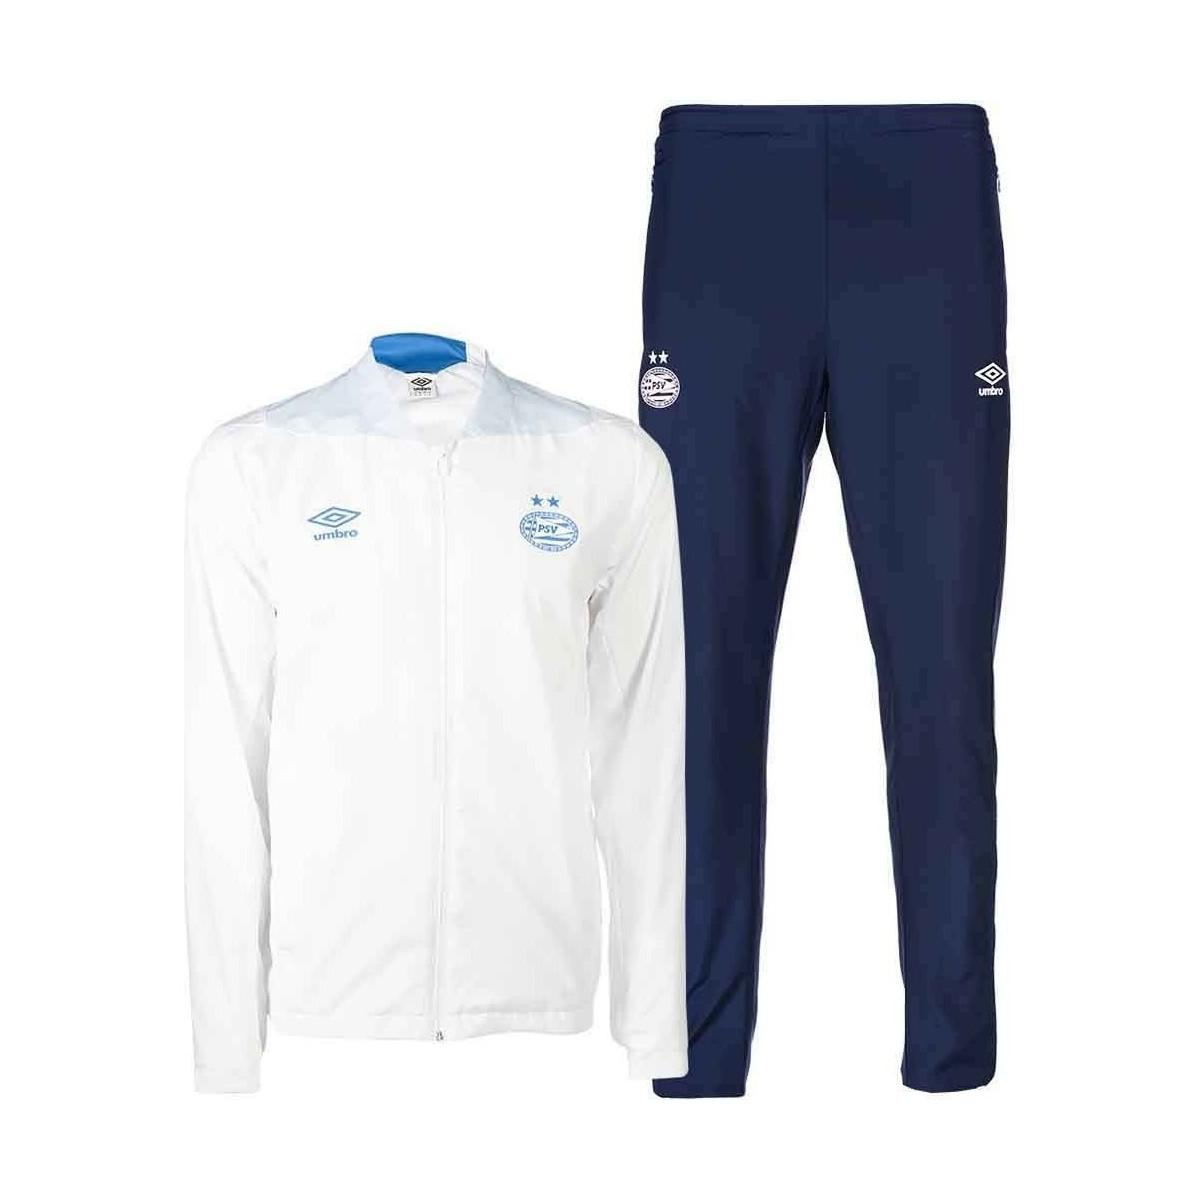 ee8cf5df623 Umbro 2018-2019 Psv Eindhoven Woven Tracksuit Men's In White in ...